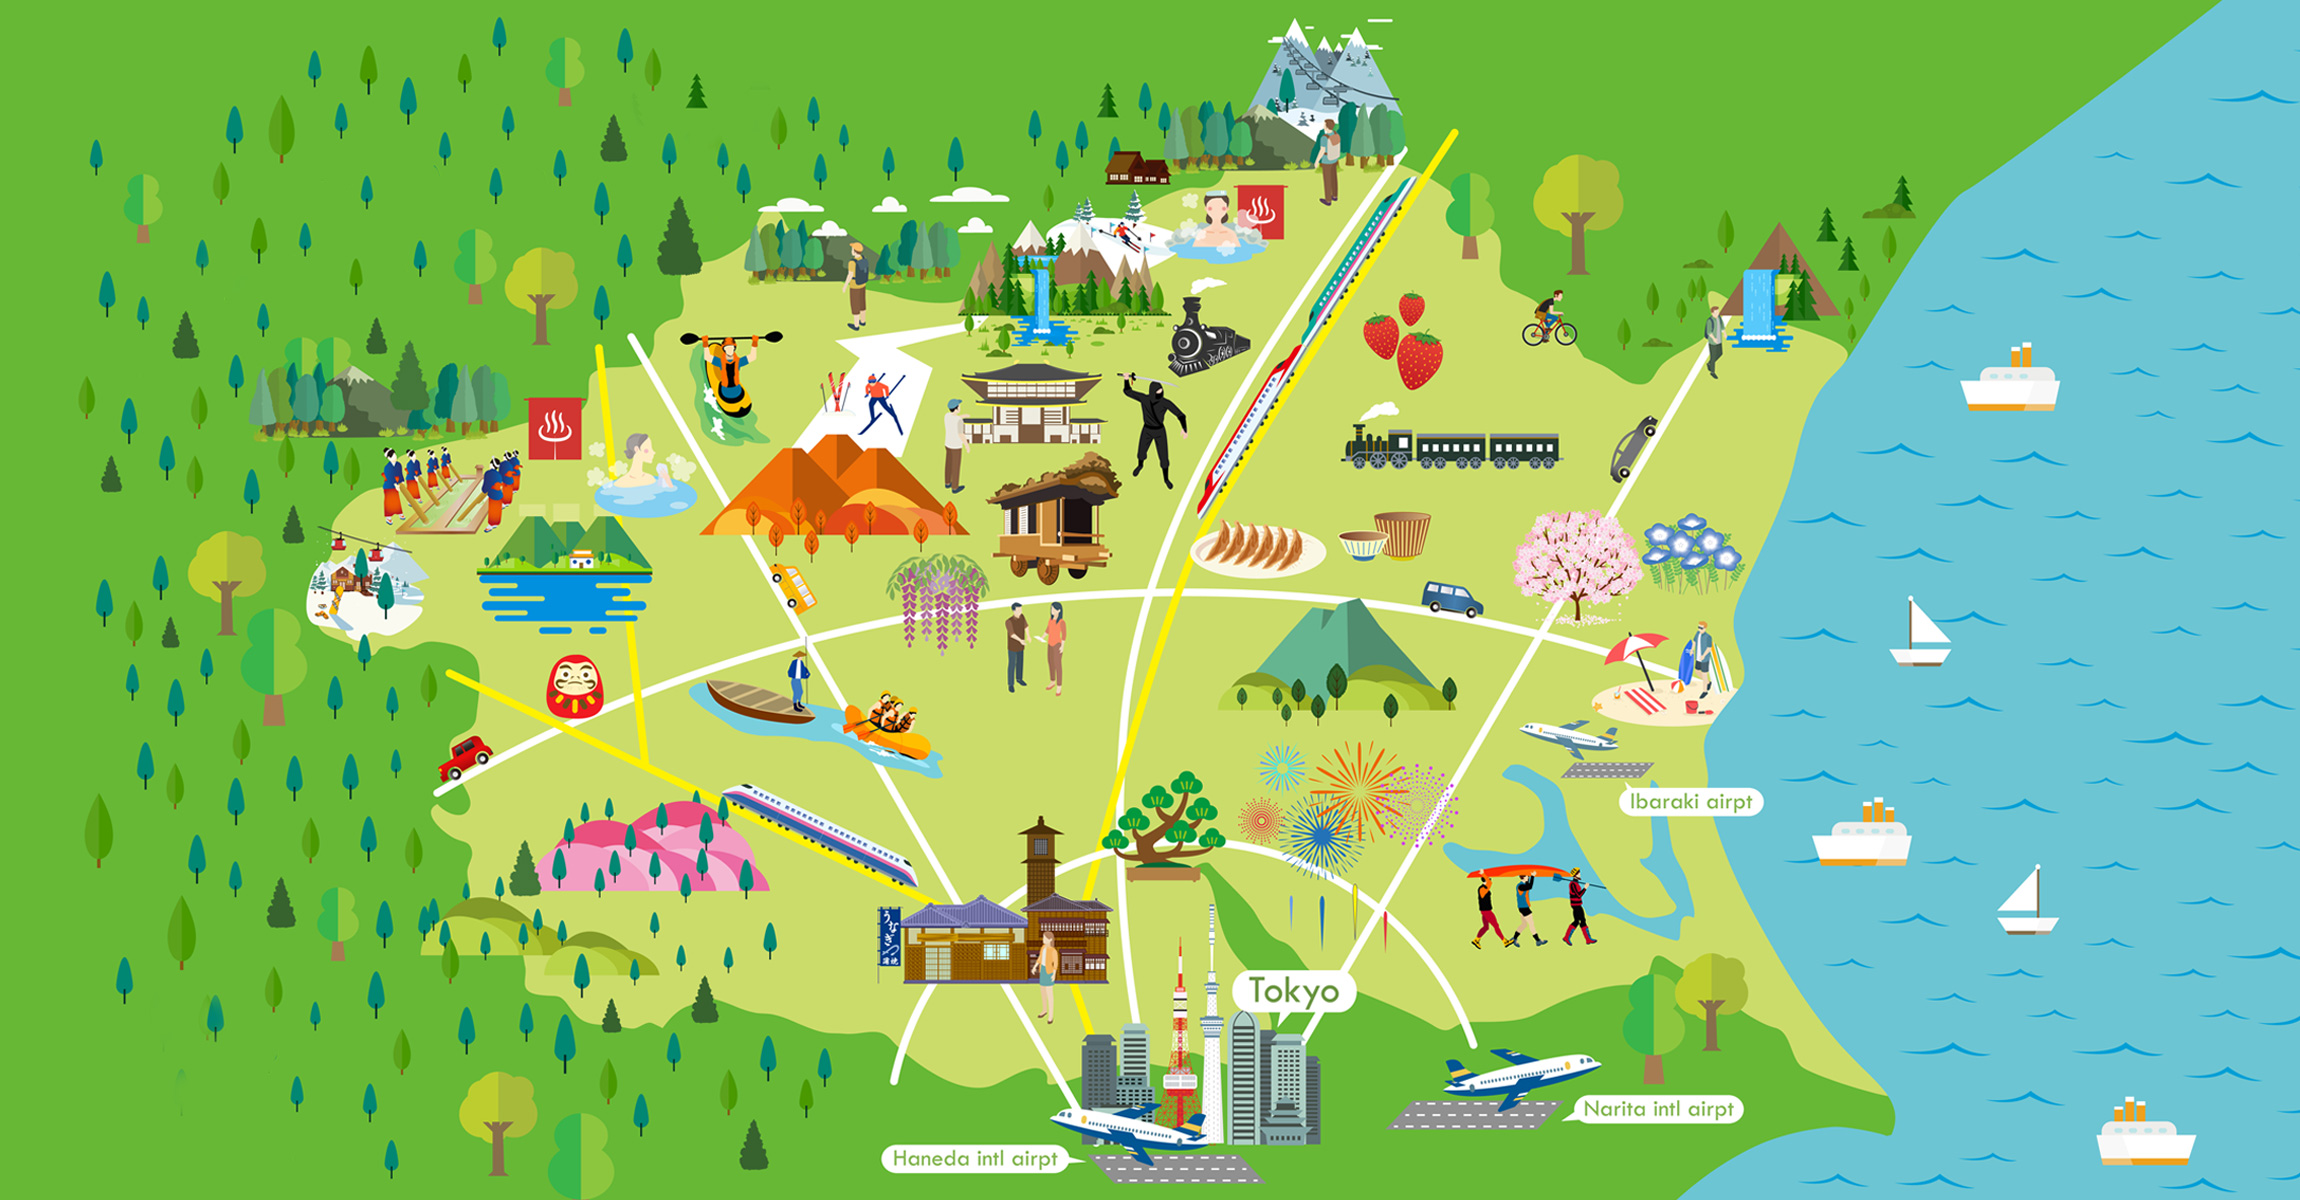 Map of activities nearby Tokyo